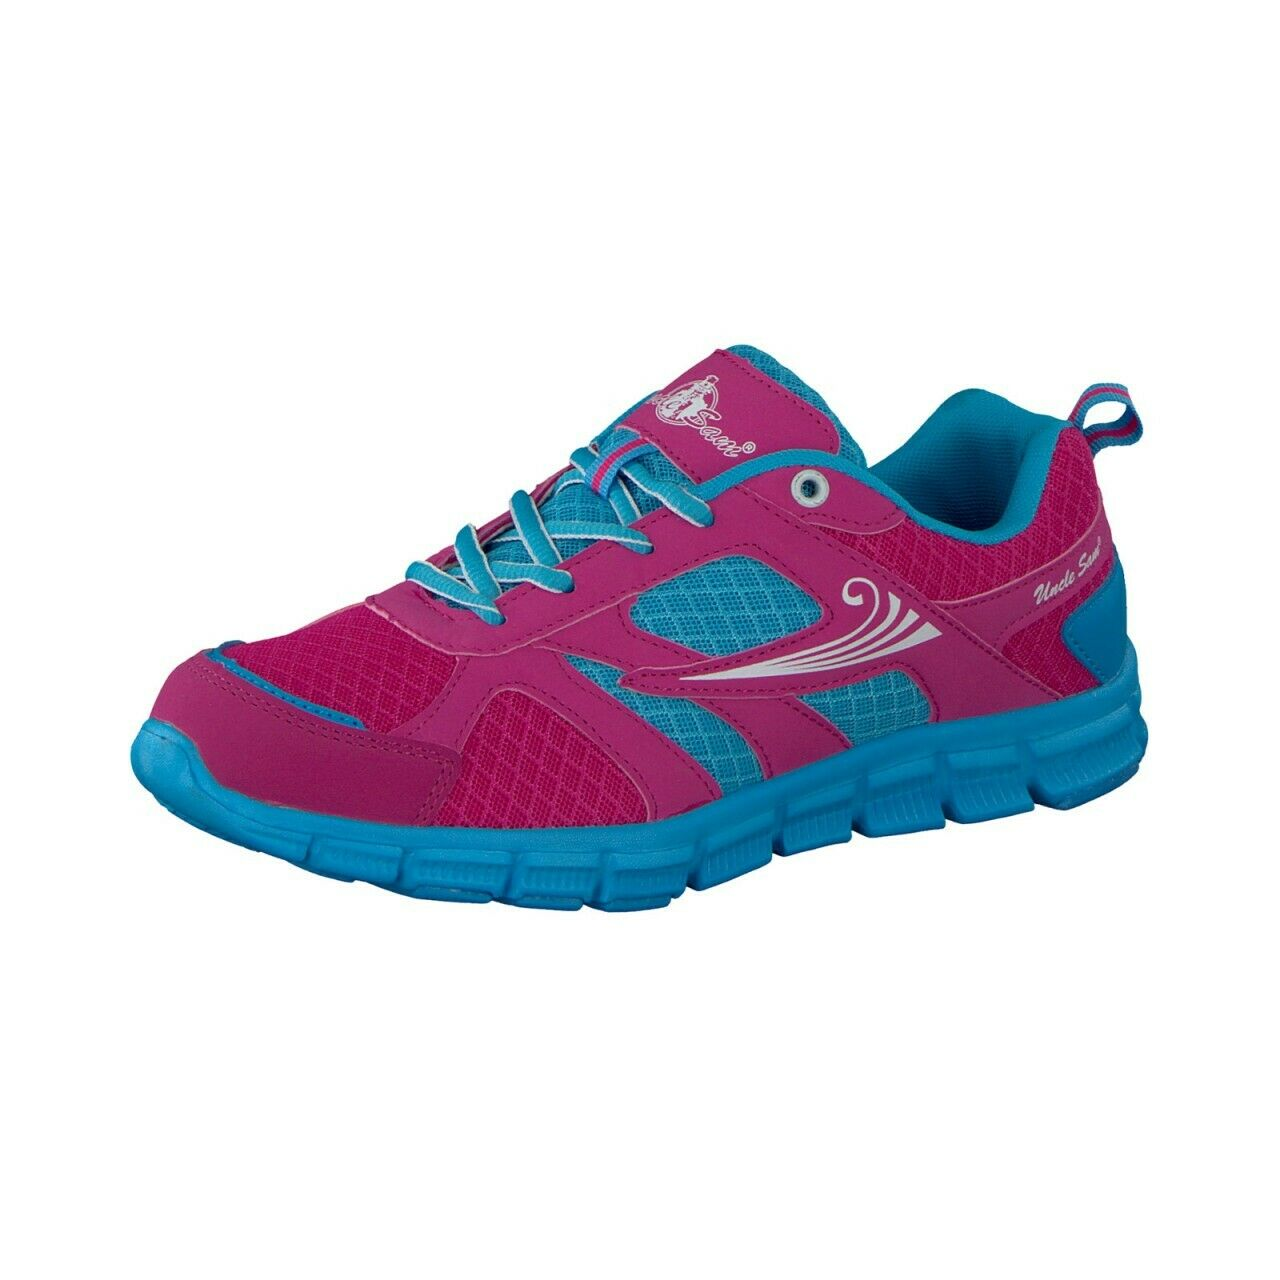 Uncle Sam Ladies Lightweight Running shoes in Pink bluee